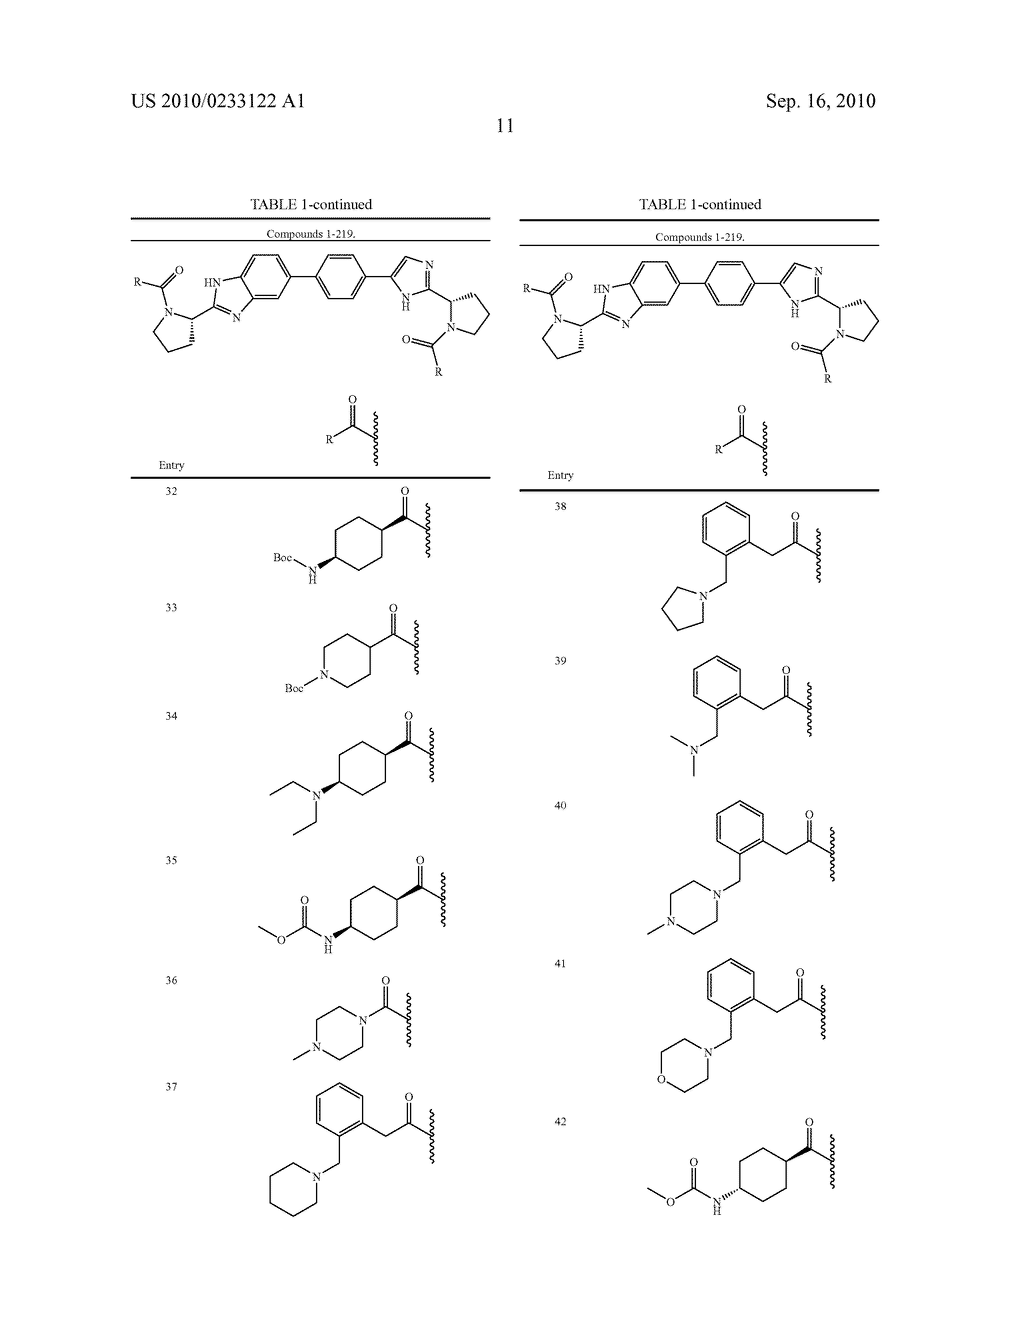 NOVEL BENZIMIDAZOLE DERIVATIVES - diagram, schematic, and image 12